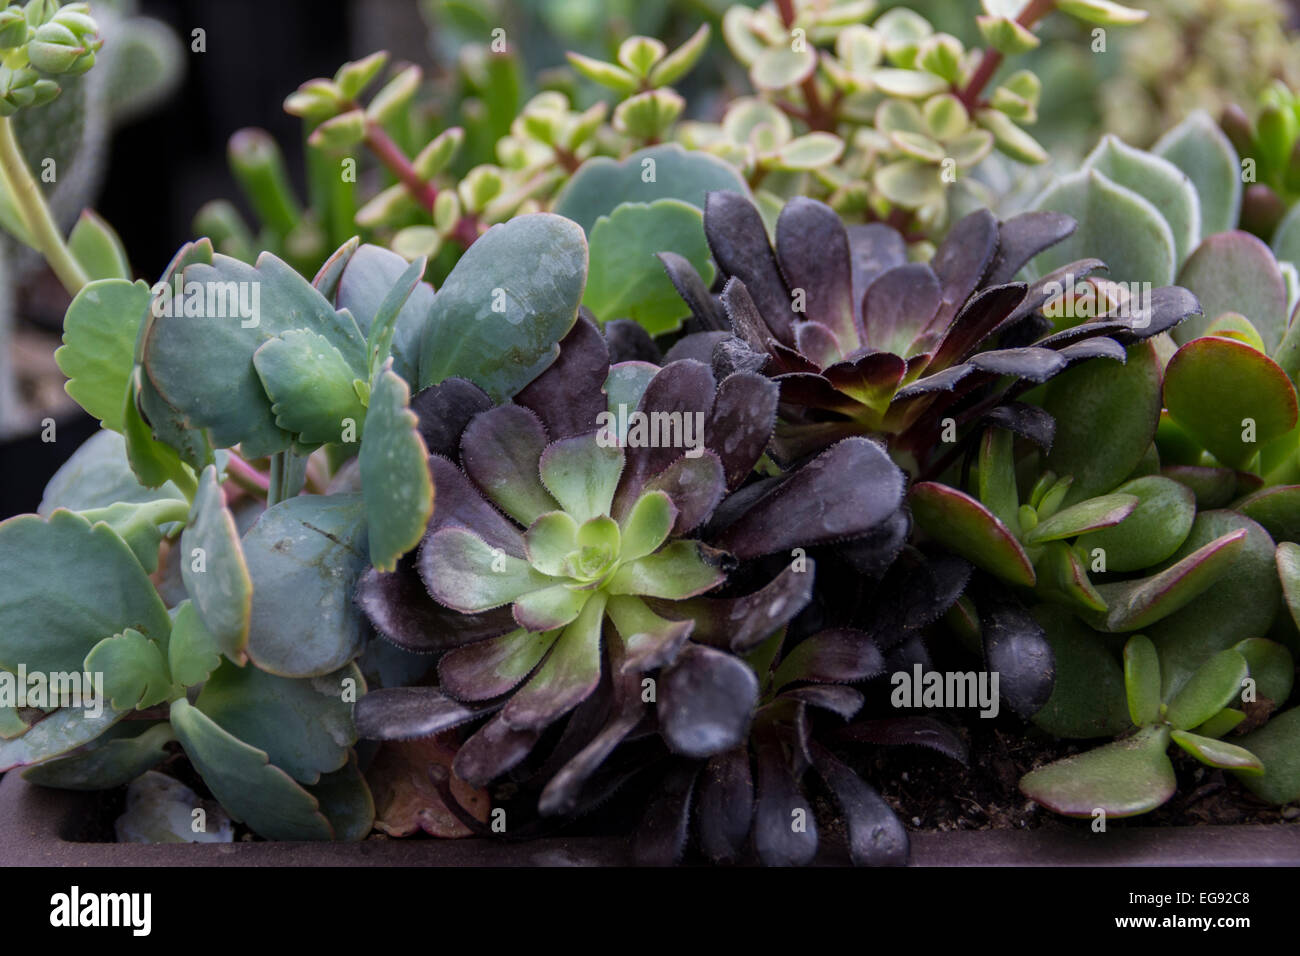 Clusters of lush thriving succulent plants. - Stock Image